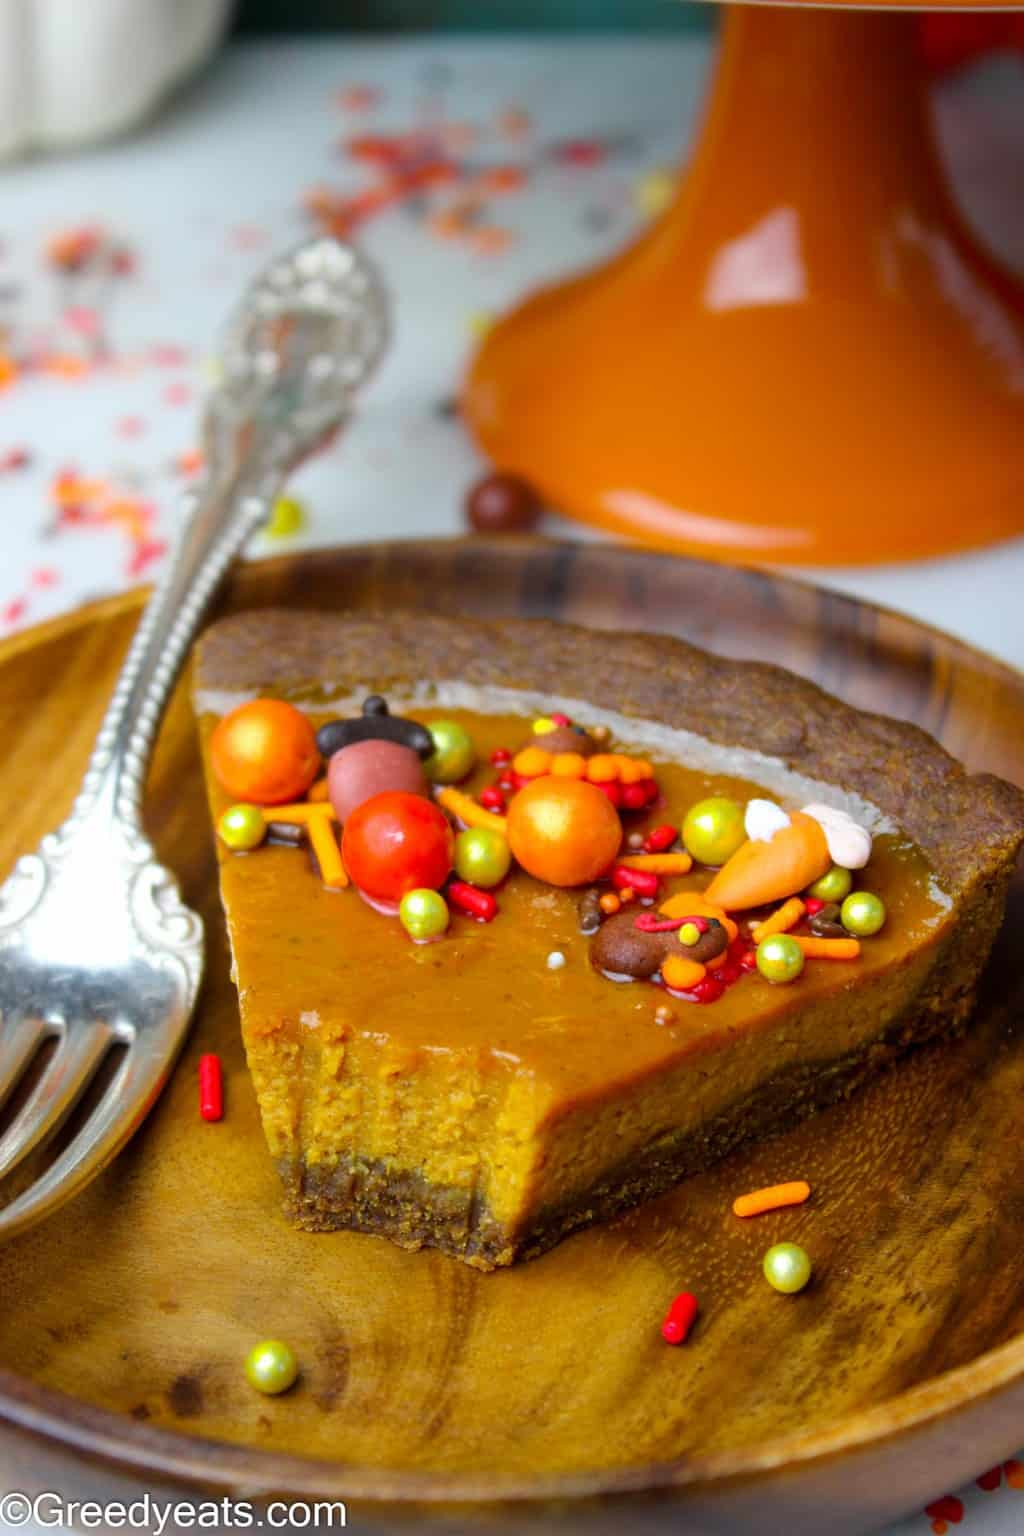 Making Pumpkin Tart recipe just got way easier than it ever was. 7 INGREDIENTS, 25 MINS BAKE TIME and NO SEPARATE CRUST BAKING!